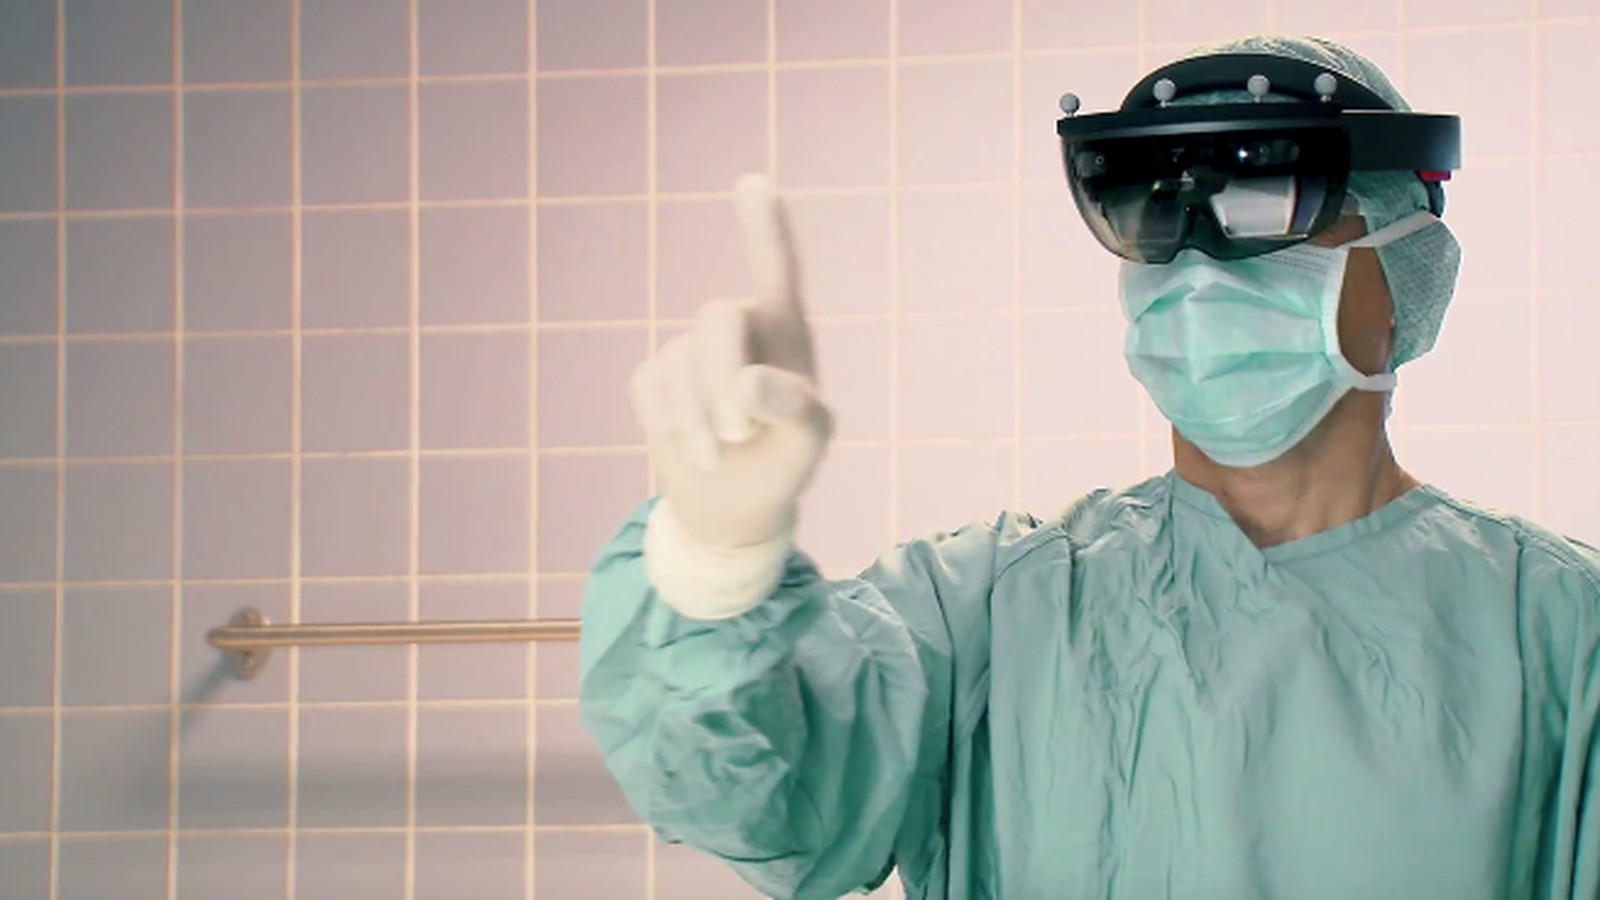 Microsoft HoloLens could help surgeons operate on your spine - The Verge